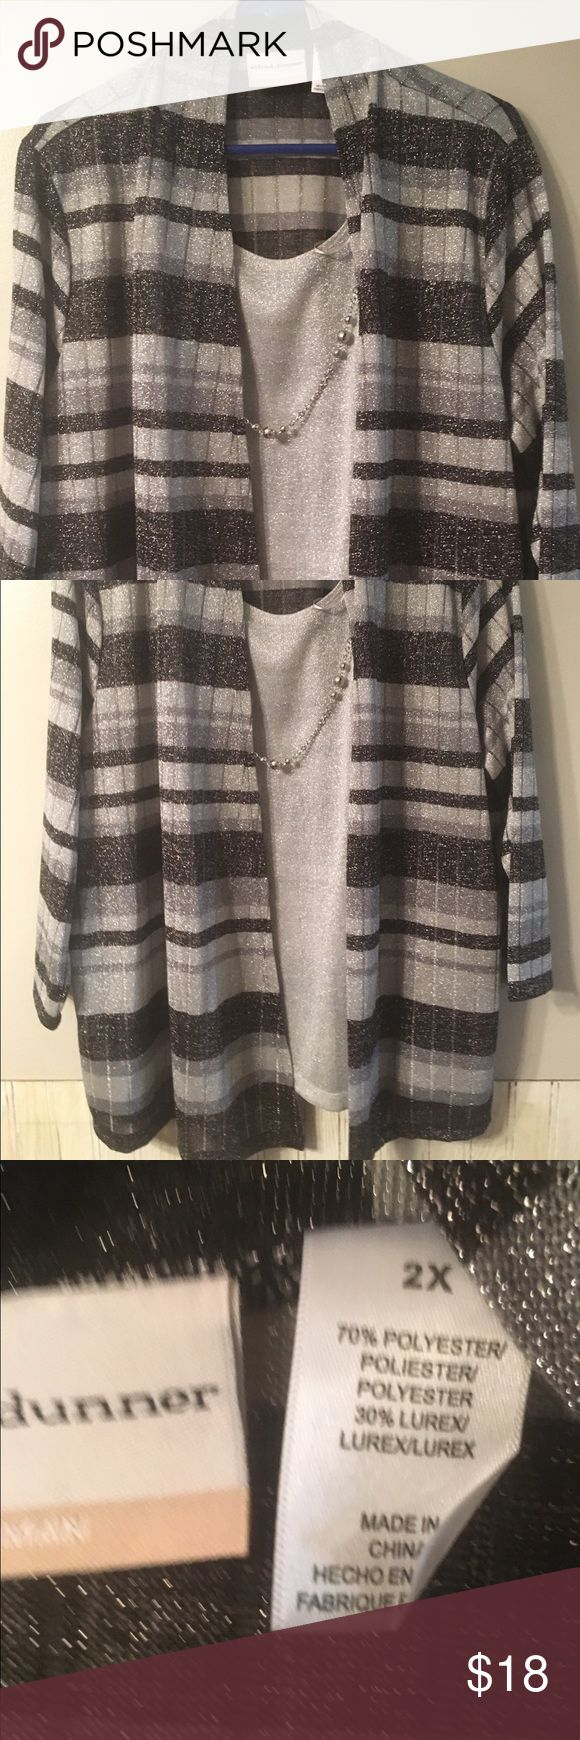 Layered look Alfred Dunner Layered Look Top. New without tags. Alfred Dunner Tops Blouses